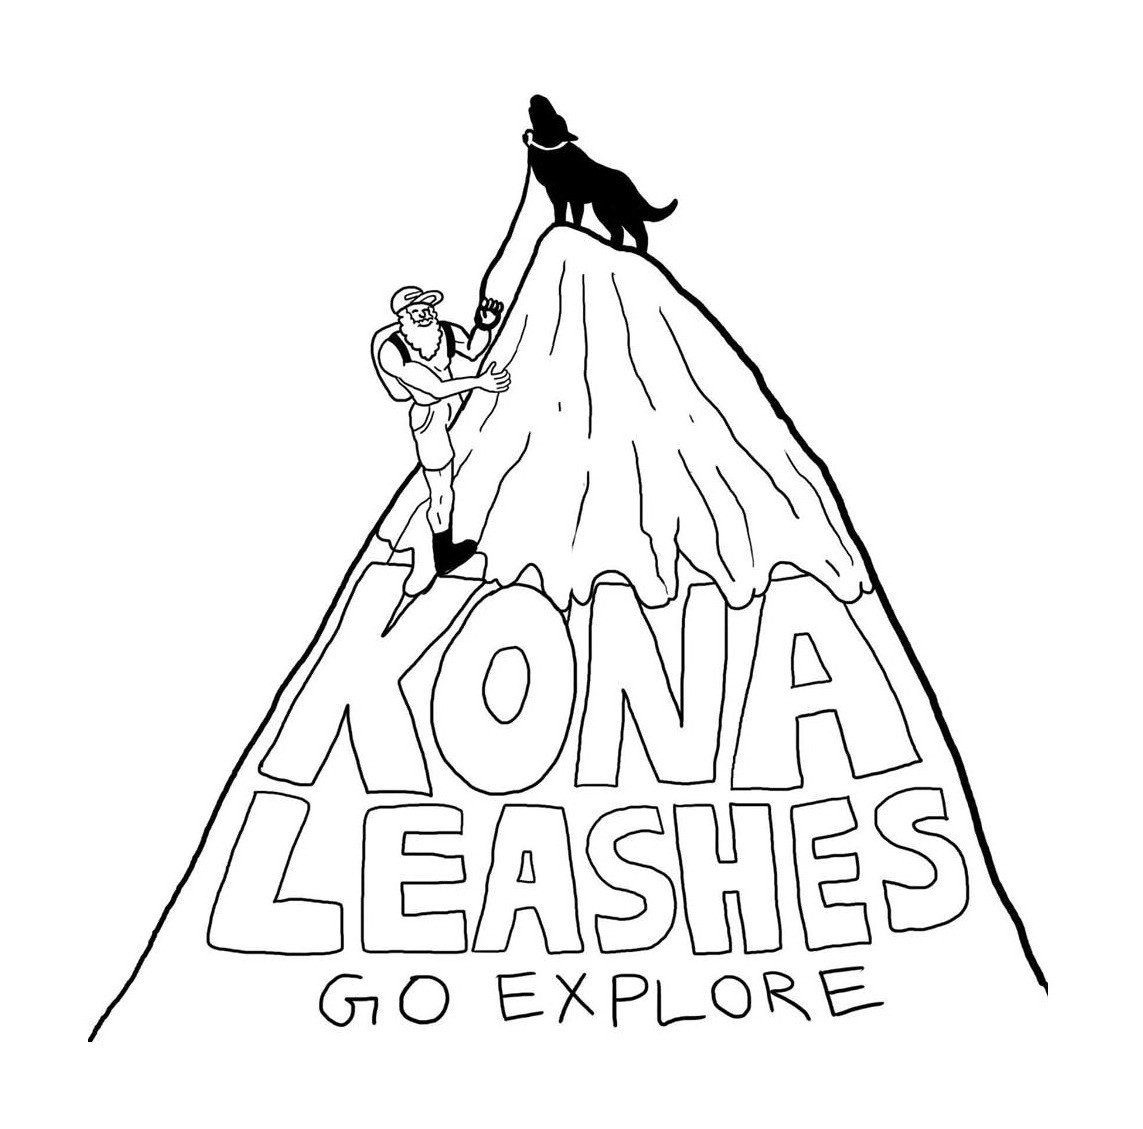 KONAleashes